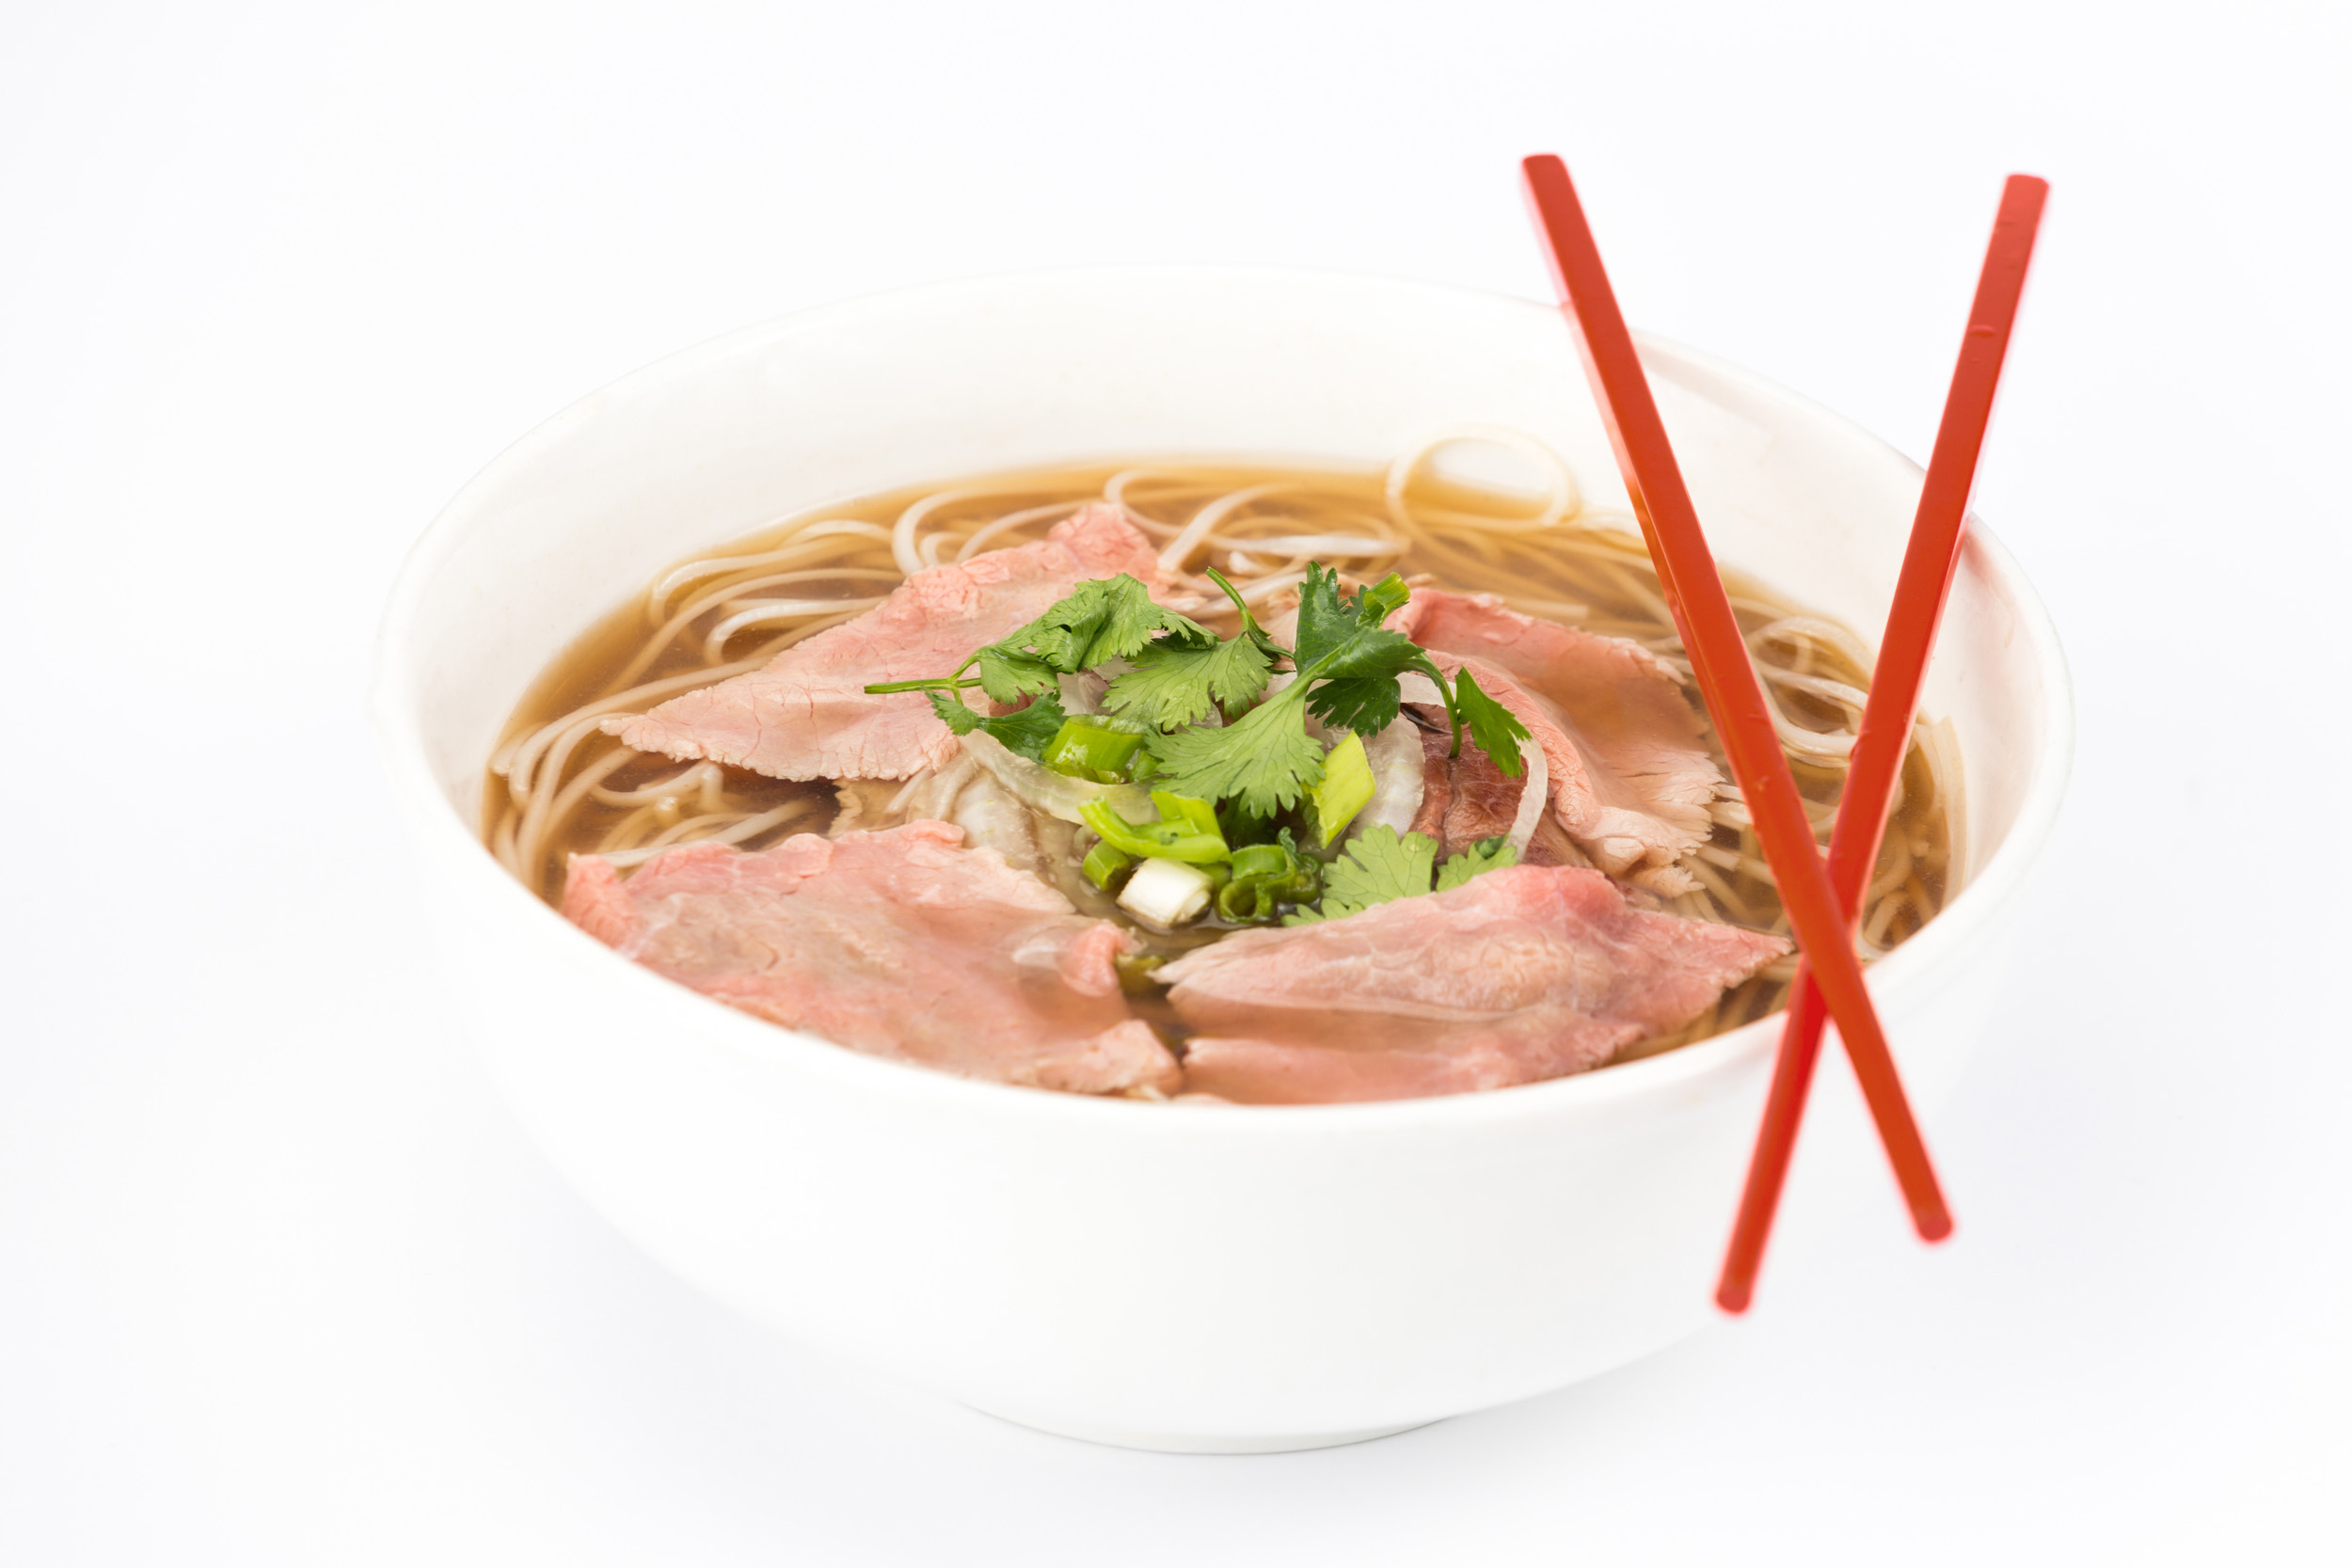 Commercial_Photograph_Pho.jpg